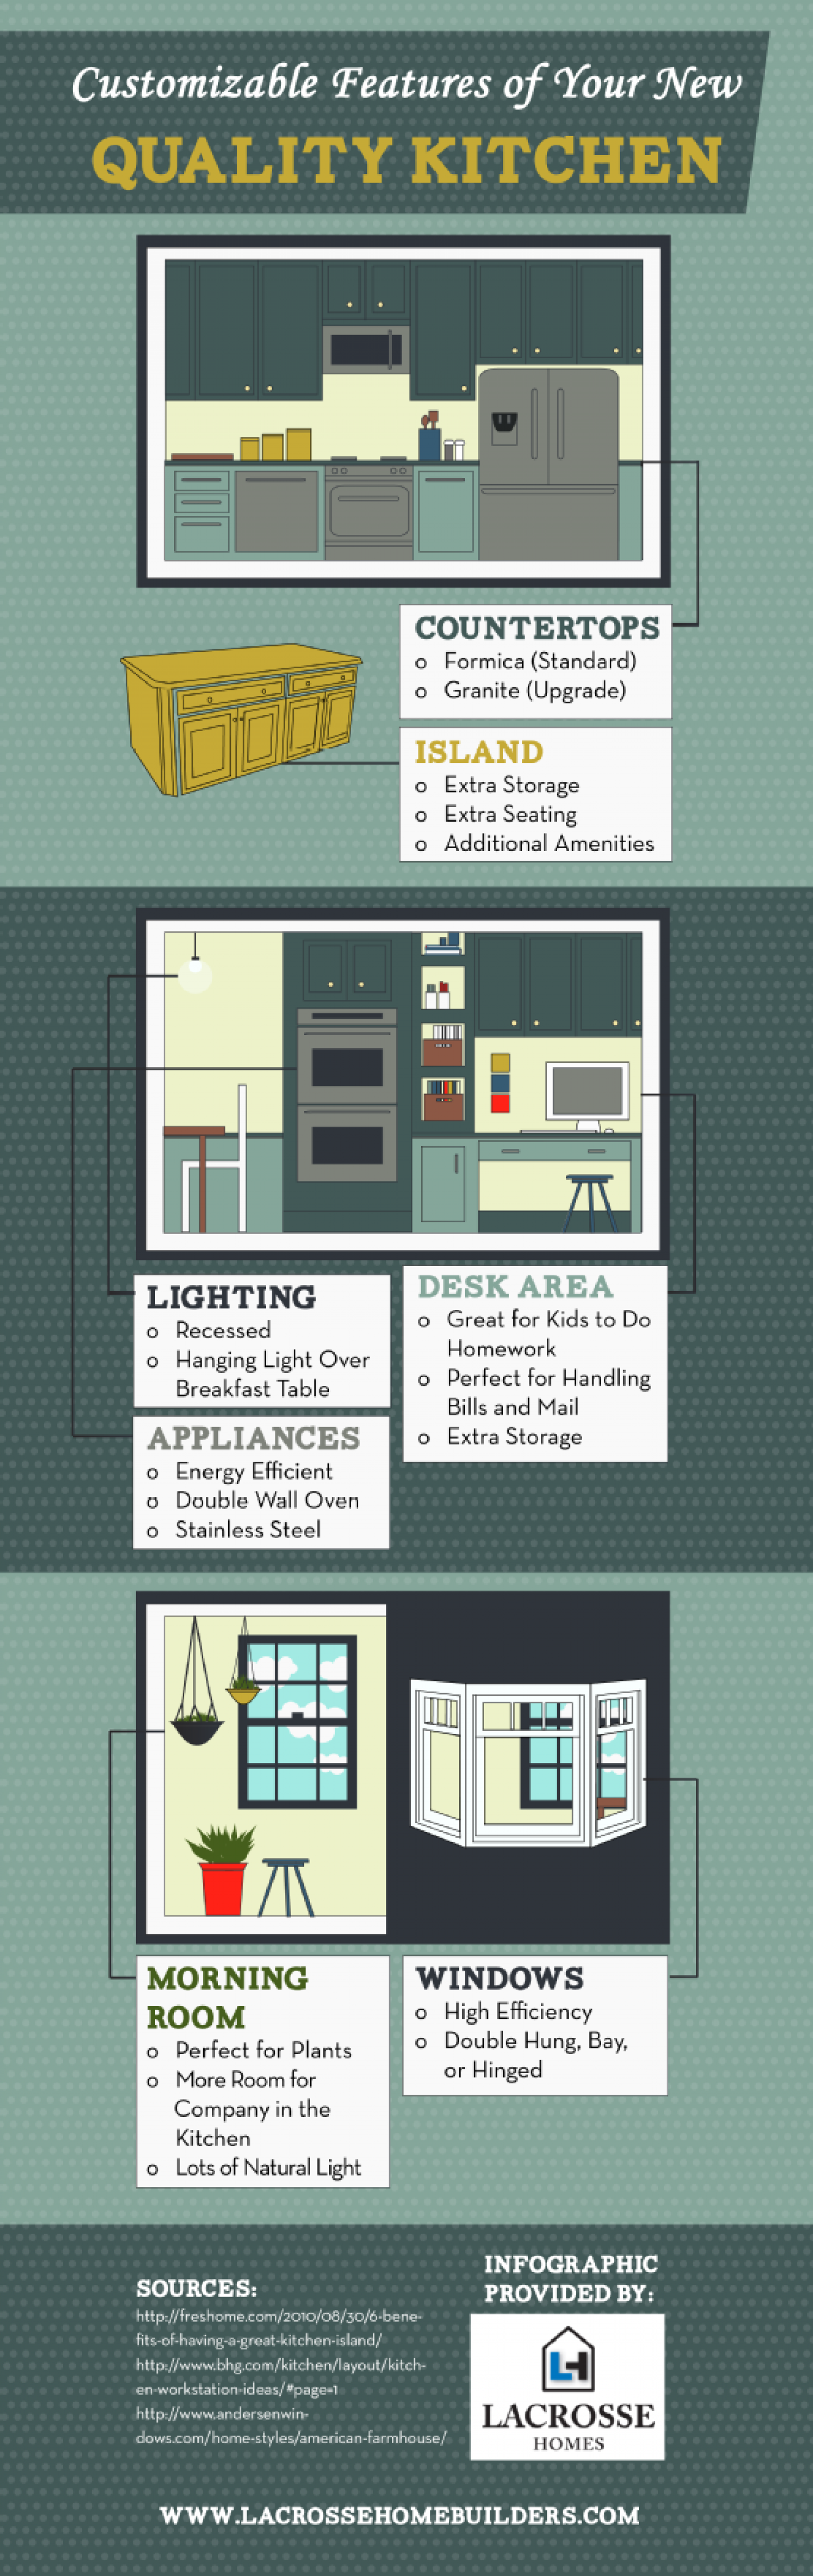 Customizable Features of a Quality Kitchen Infographic